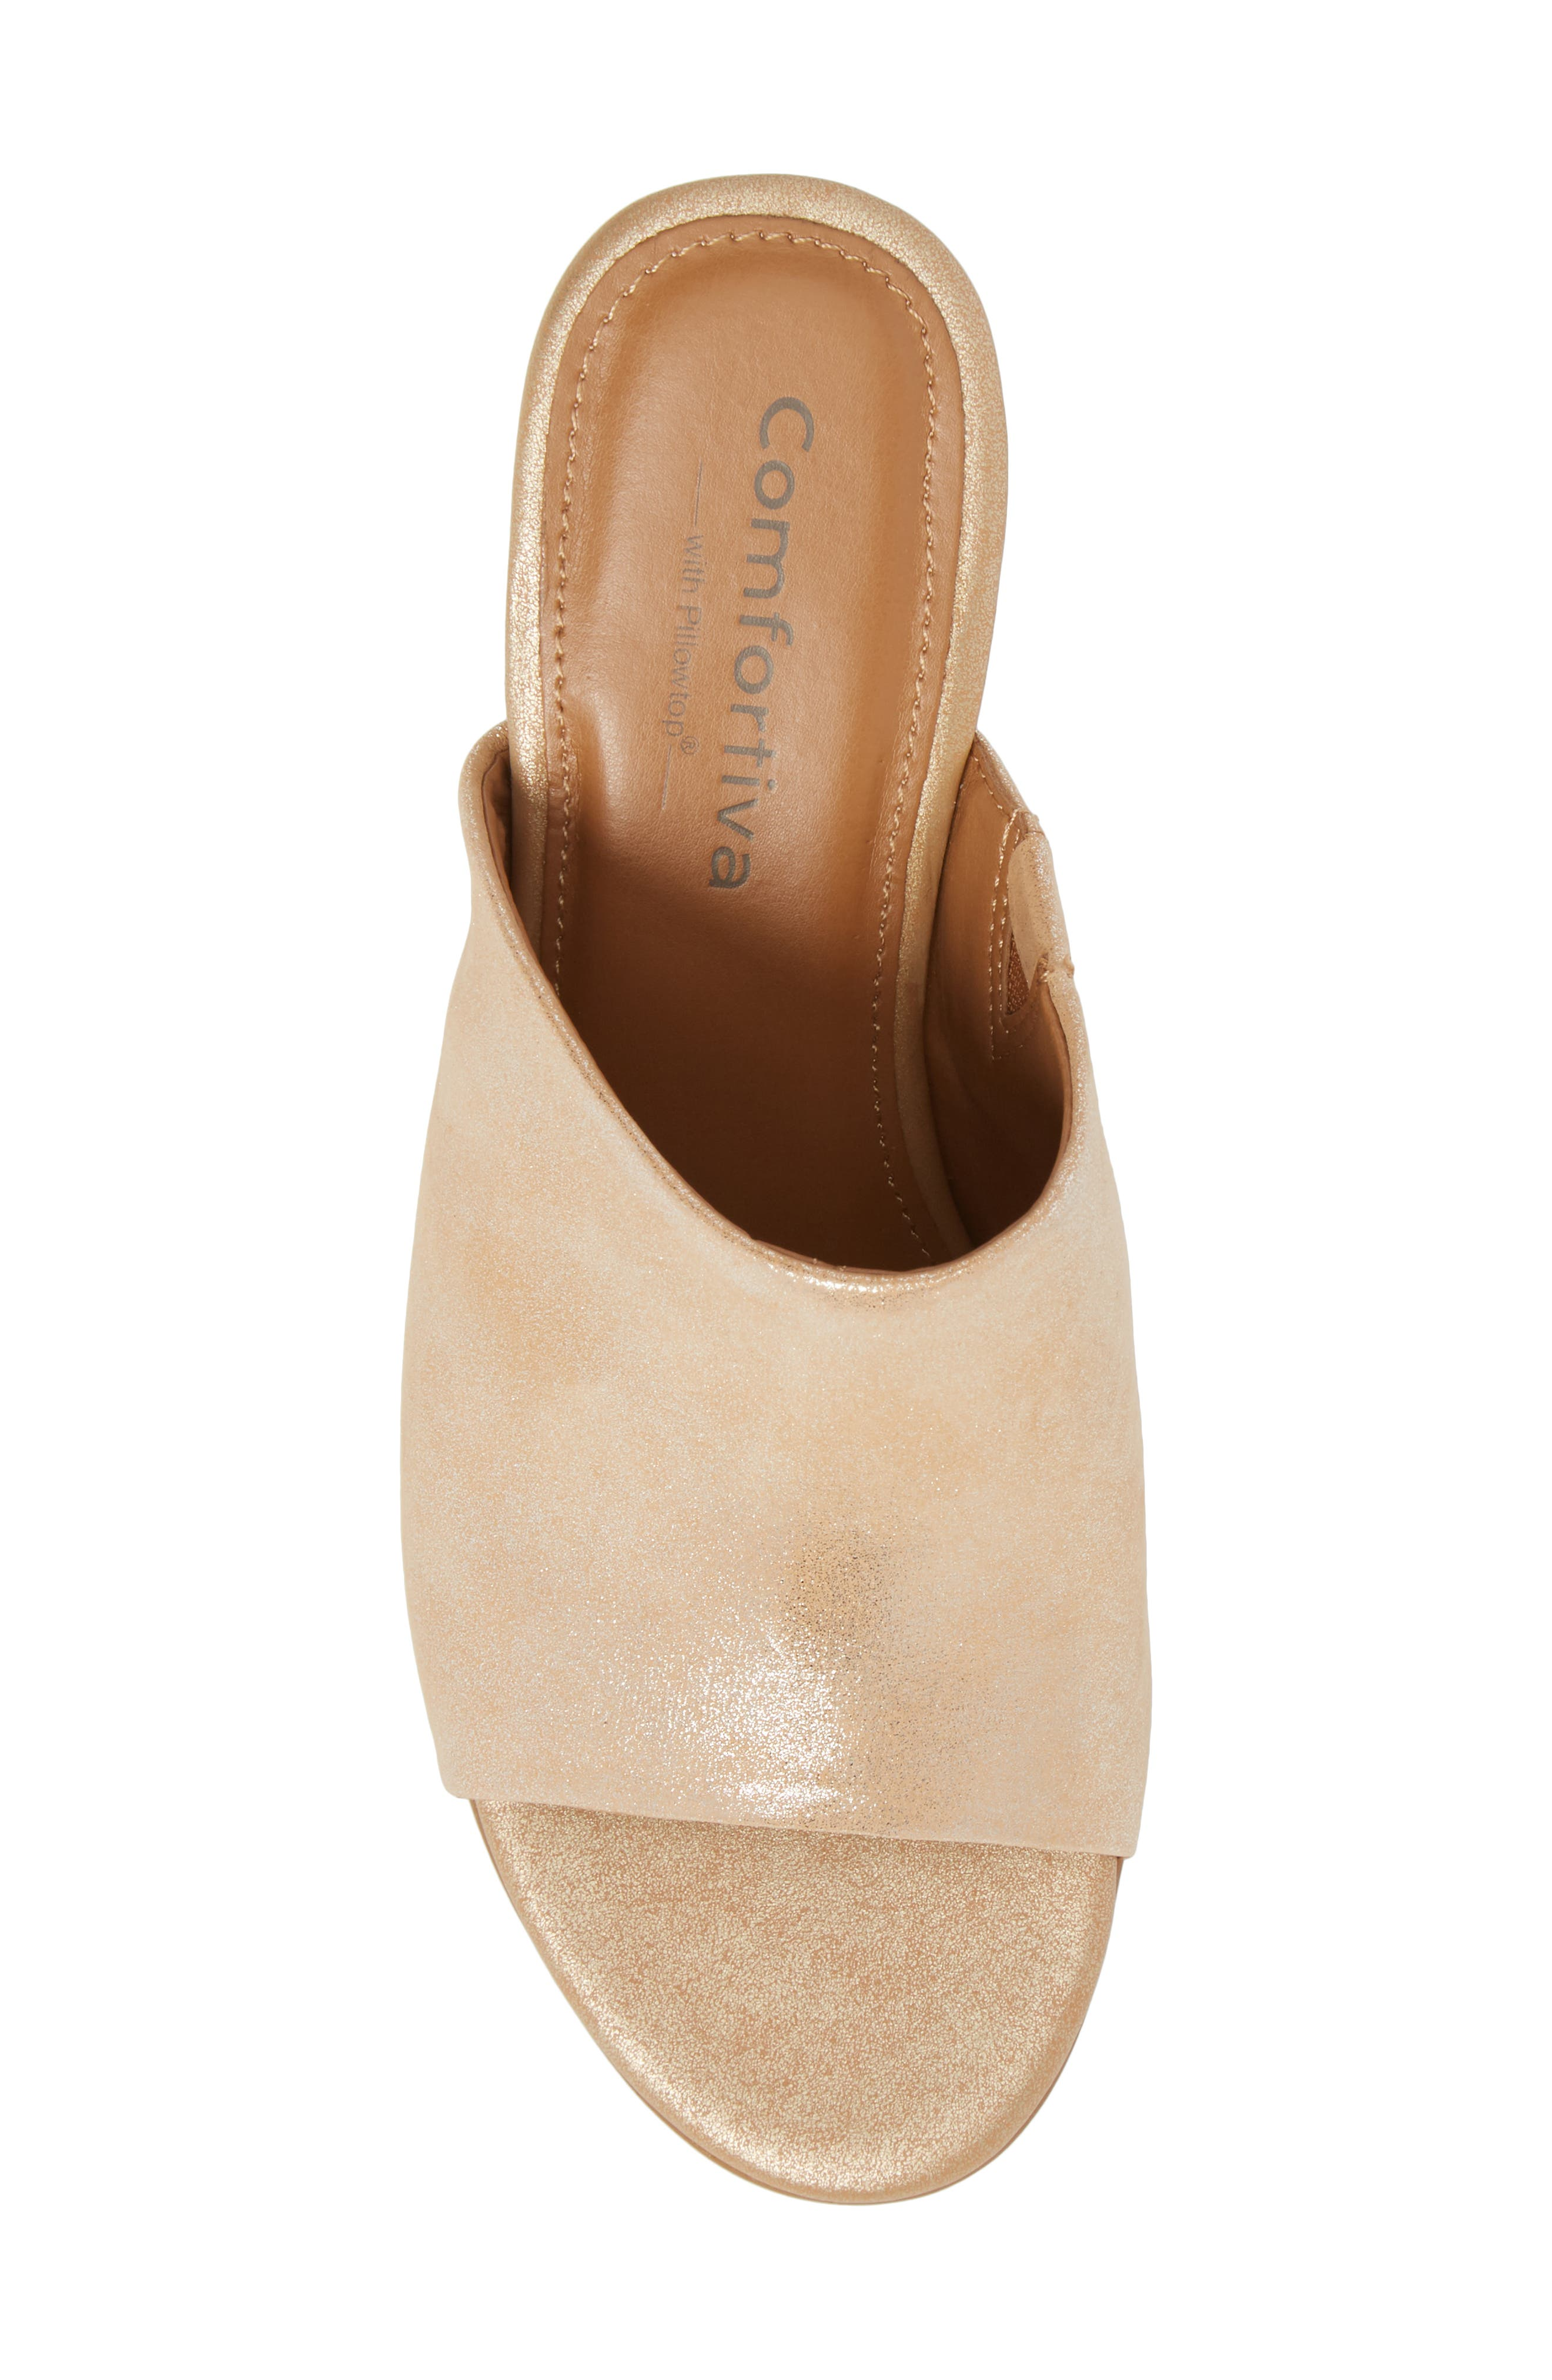 Anabella Sandal,                             Alternate thumbnail 5, color,                             Natural Leather